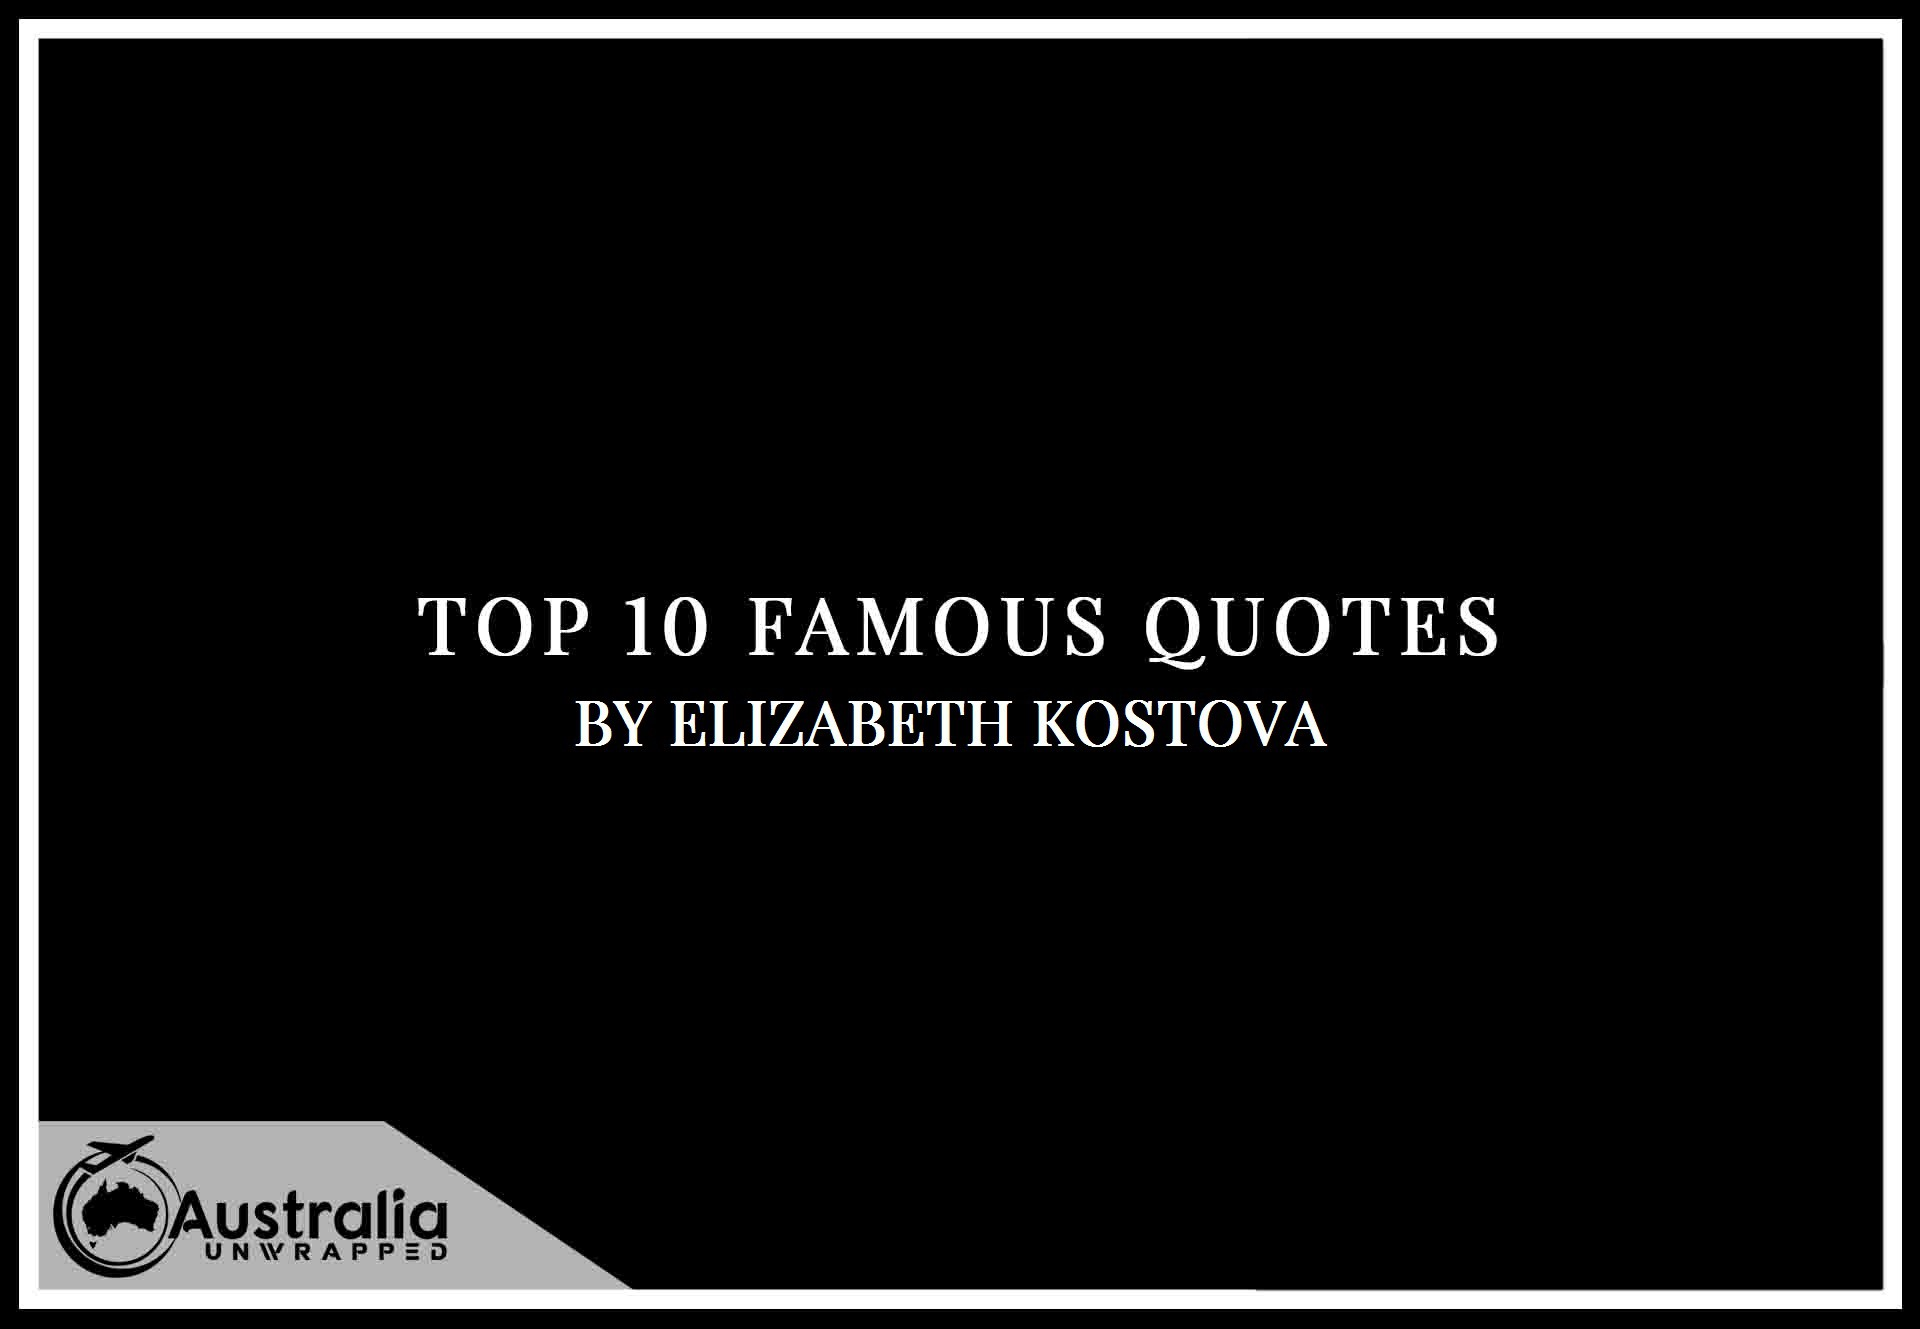 Elizabeth Kostova's Top 10 Popular and Famous Quotes